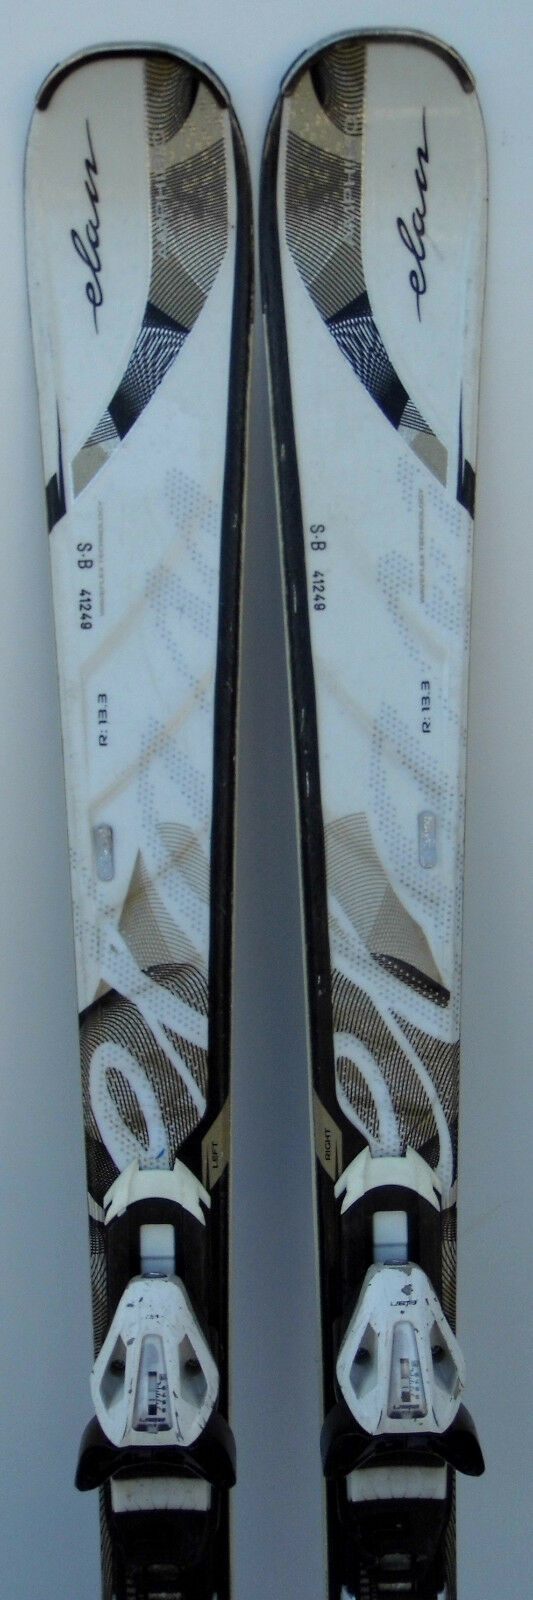 Skis parabolic used Woman ELAN Inspire Fusion - 59 13  16in & 65 3 8in  save up to 70%